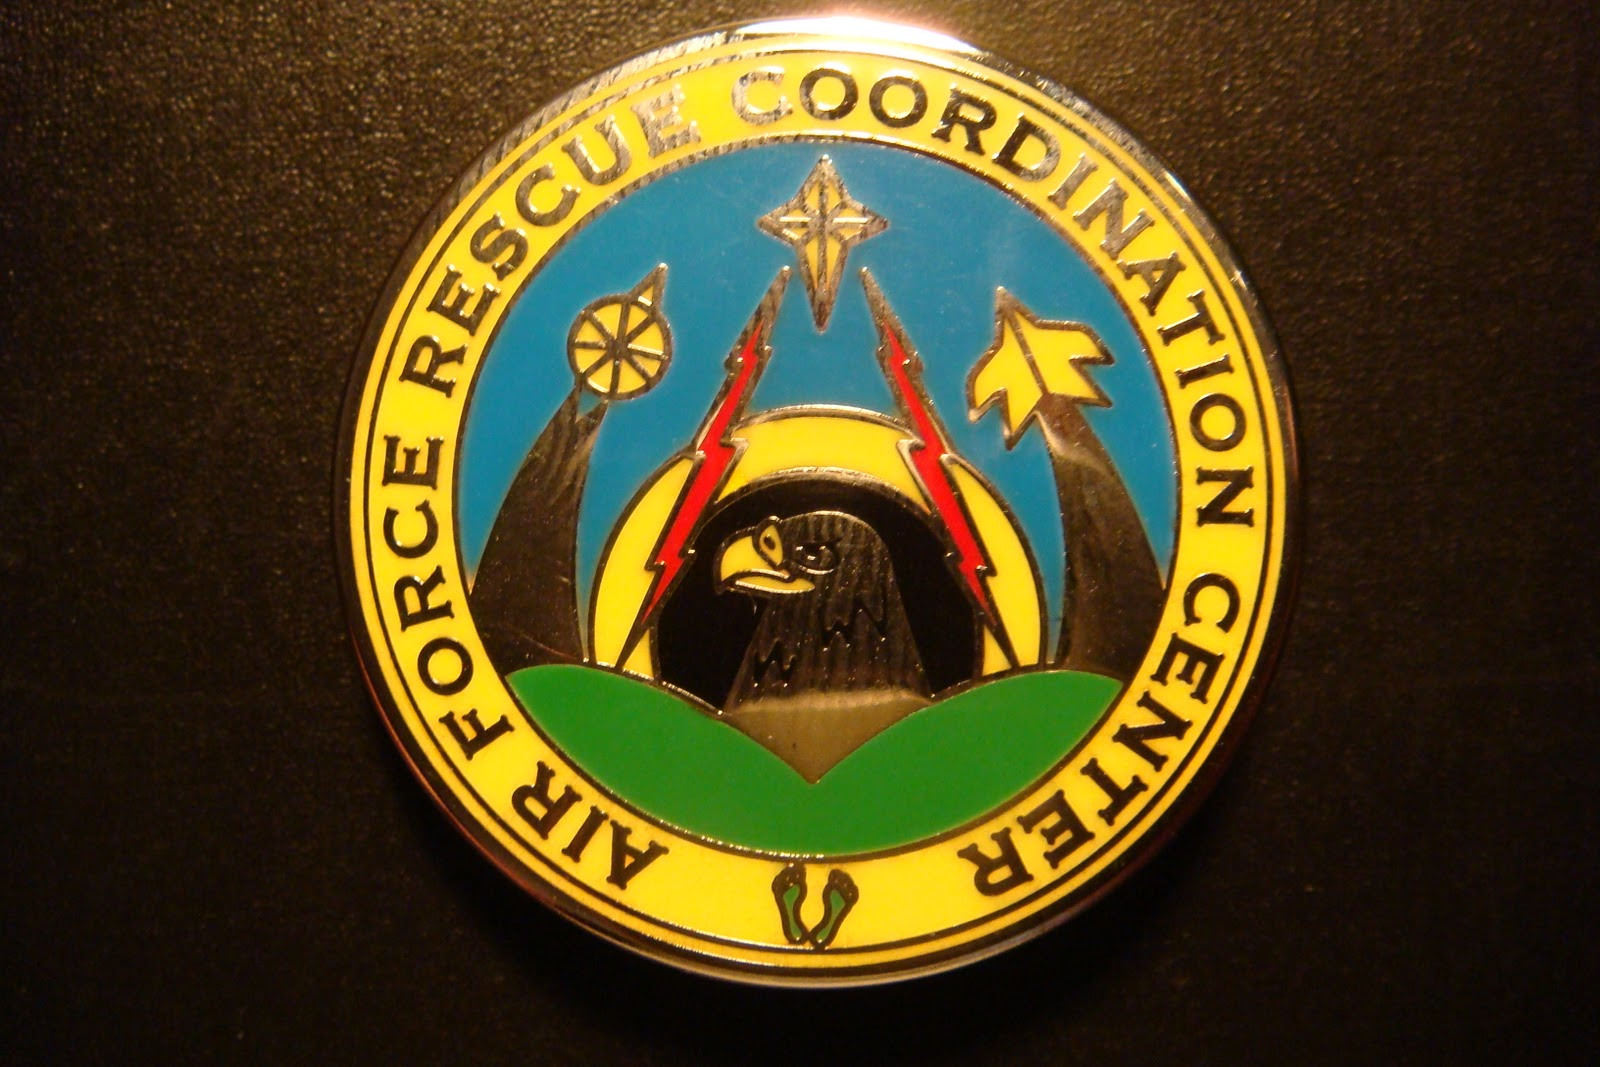 THE USAF RESCUE COLLECTION: USAF AFRCC / Green Feet / Lapel Pin